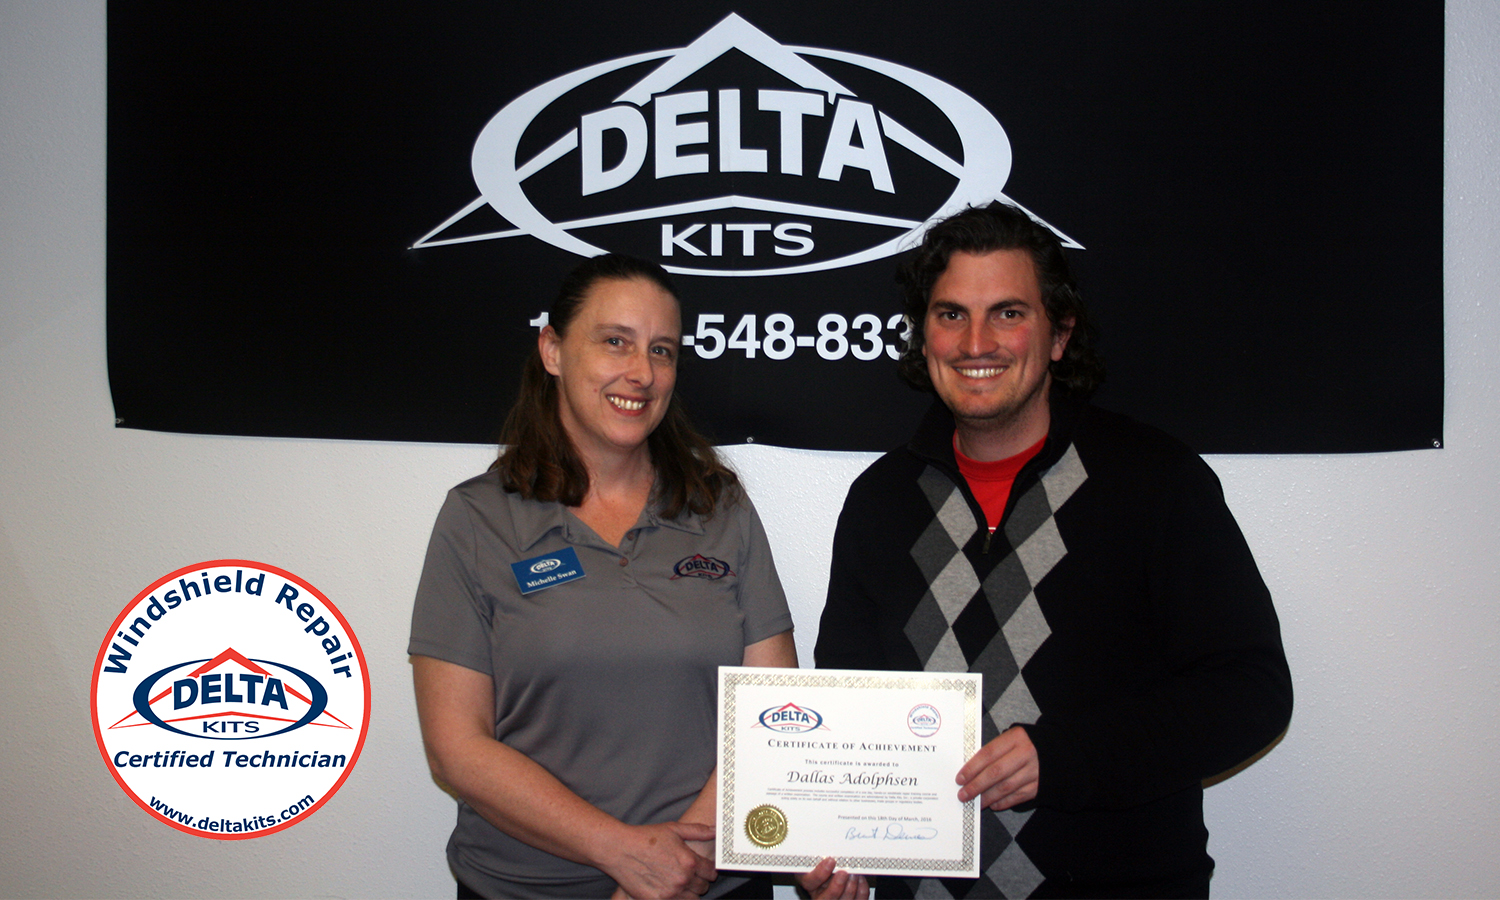 Delta Kits Certified Technicians April 2016